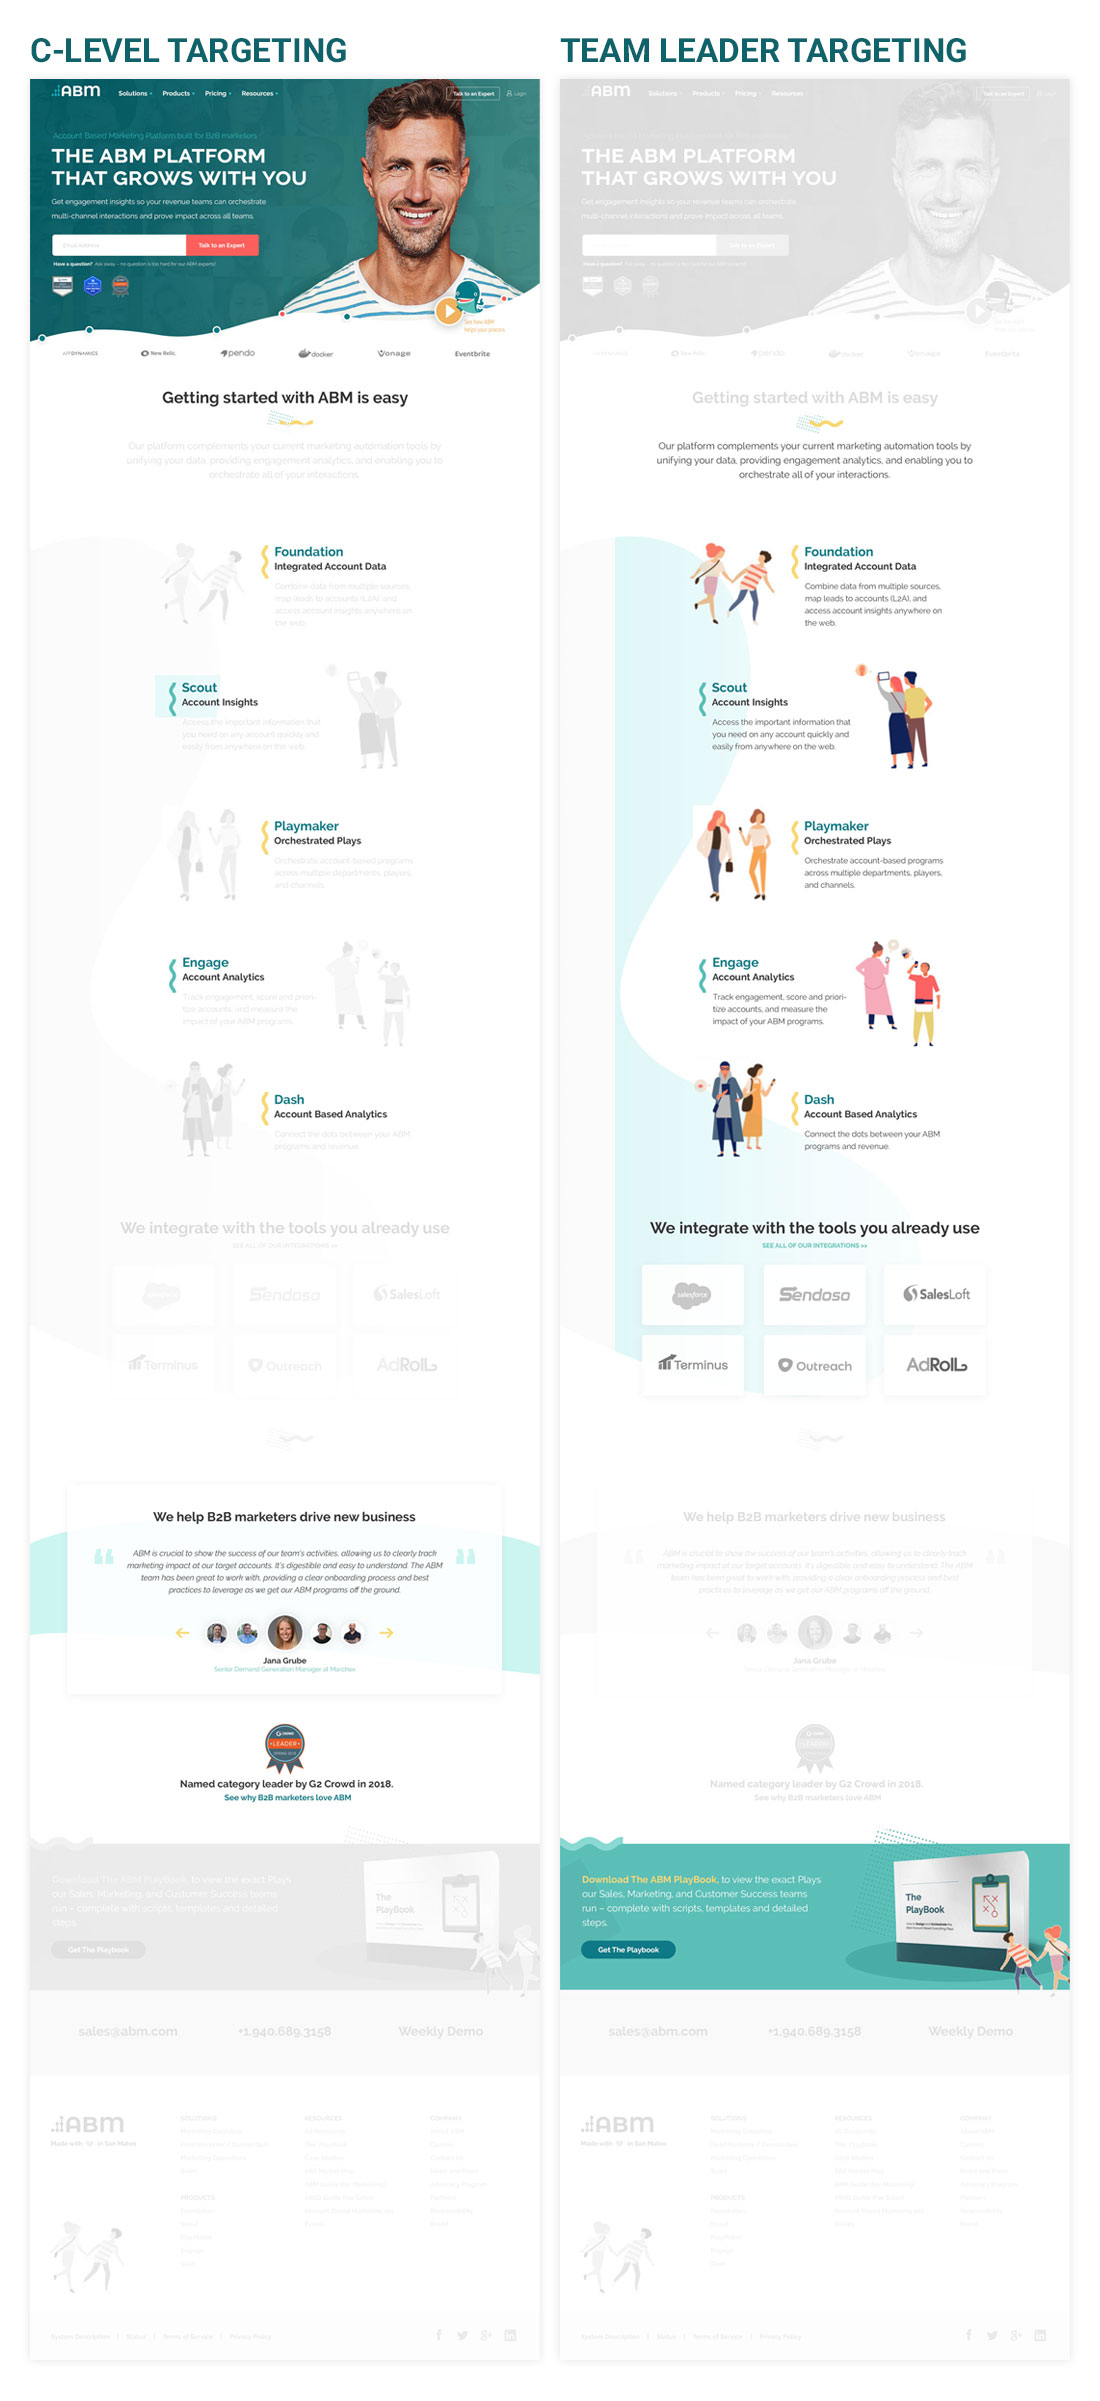 target multiple personas on a single page